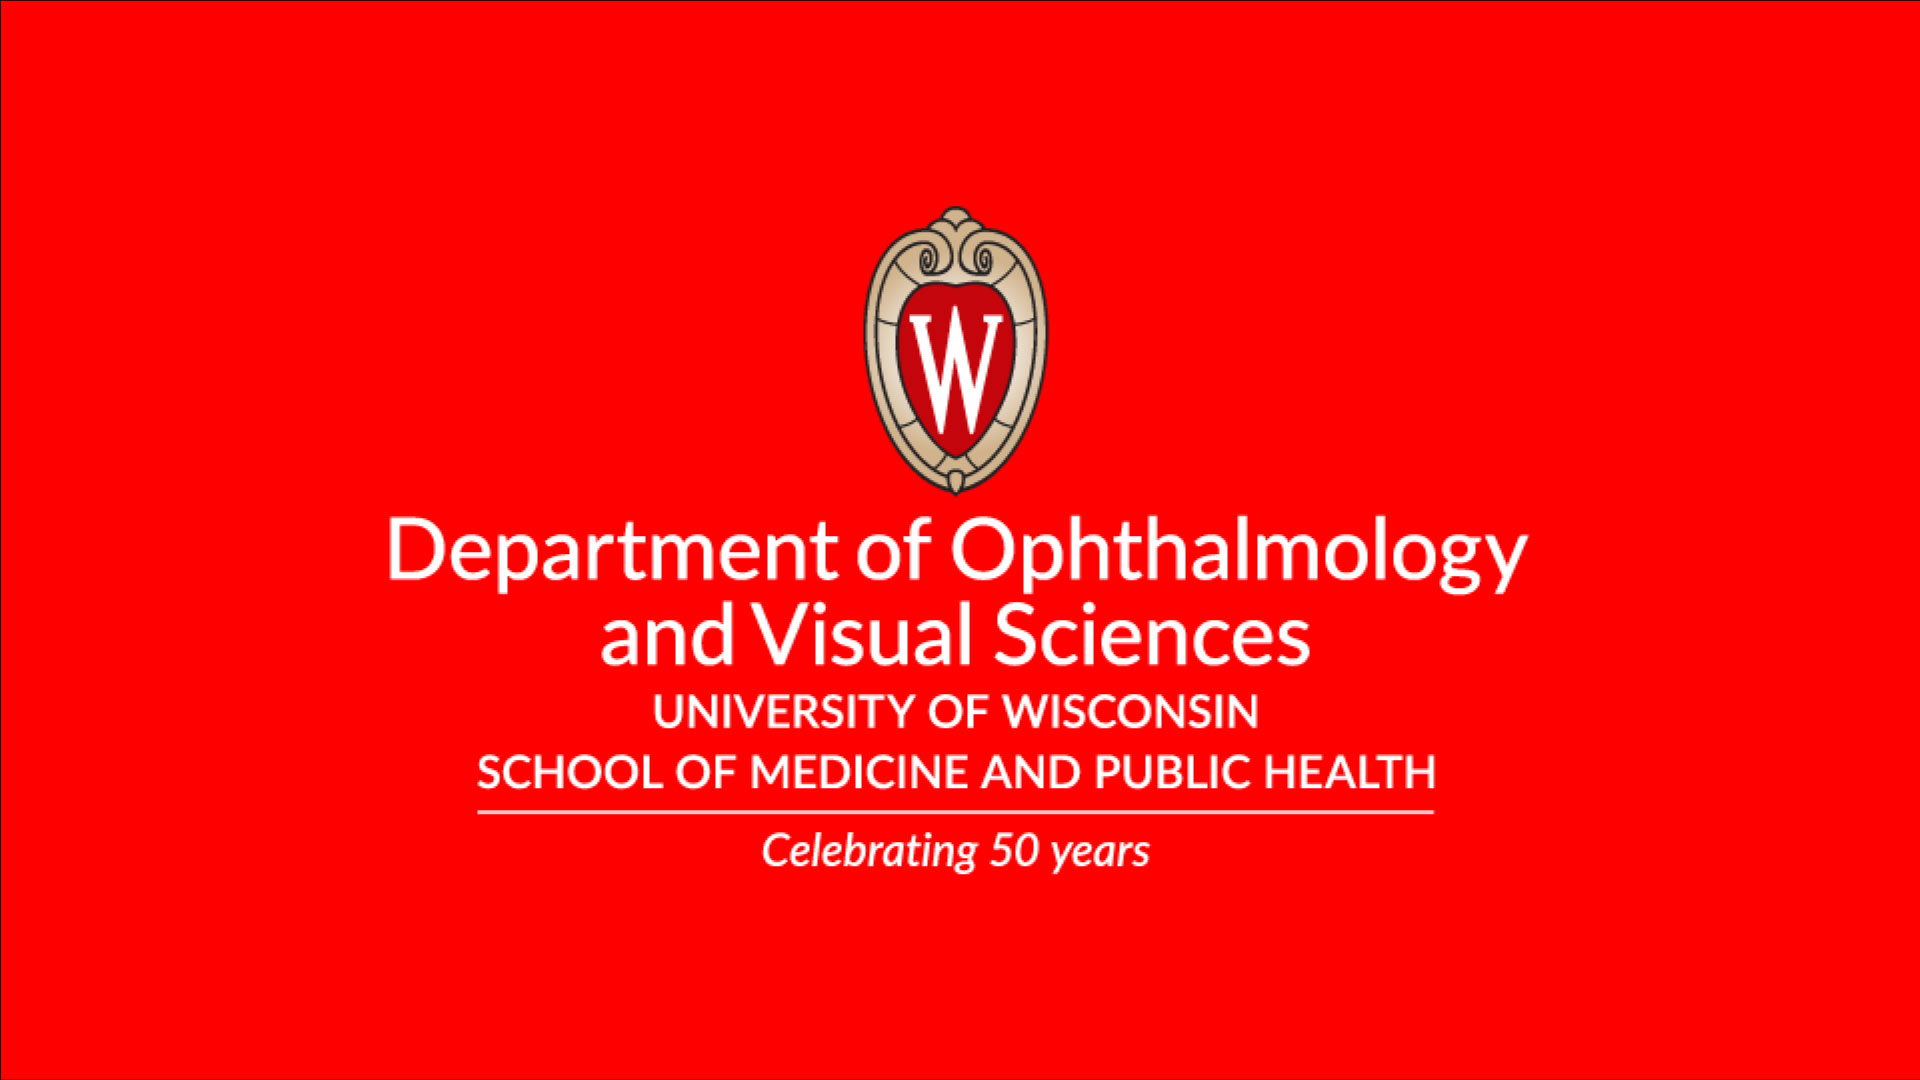 Celebrating 50 years of Ophthalmology at UW-Madison